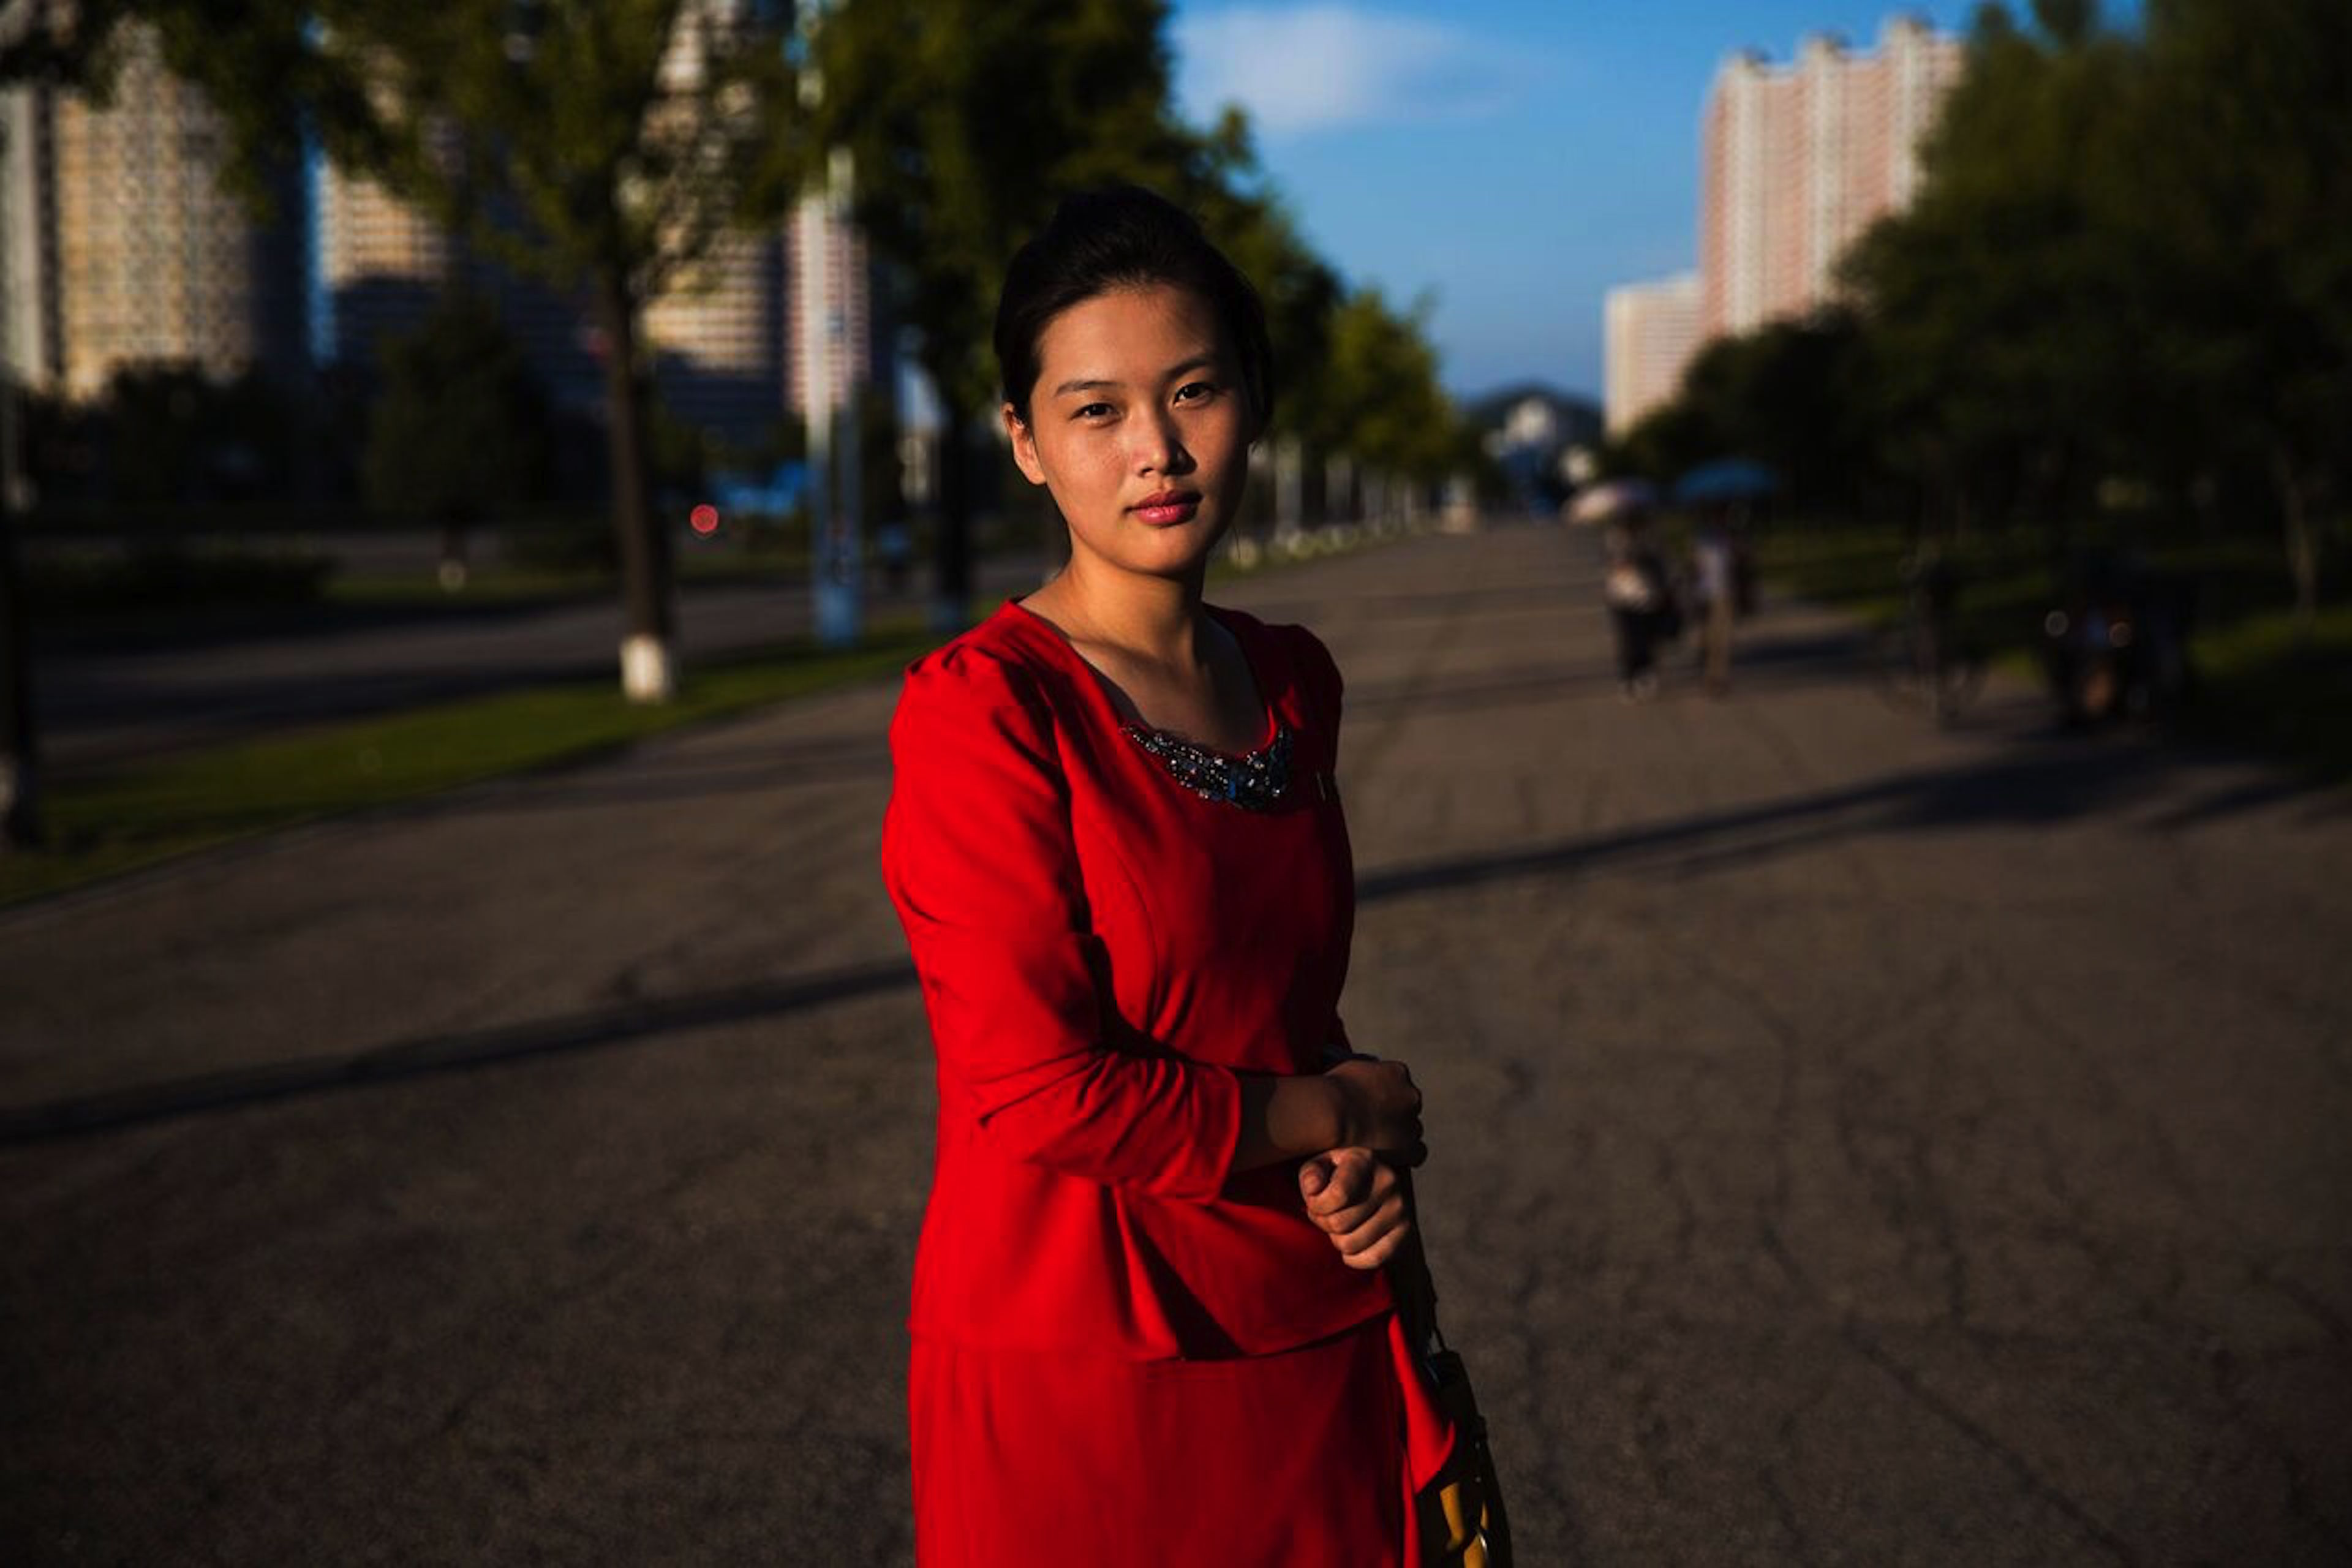 Photographer captures normal life in North Korea   North